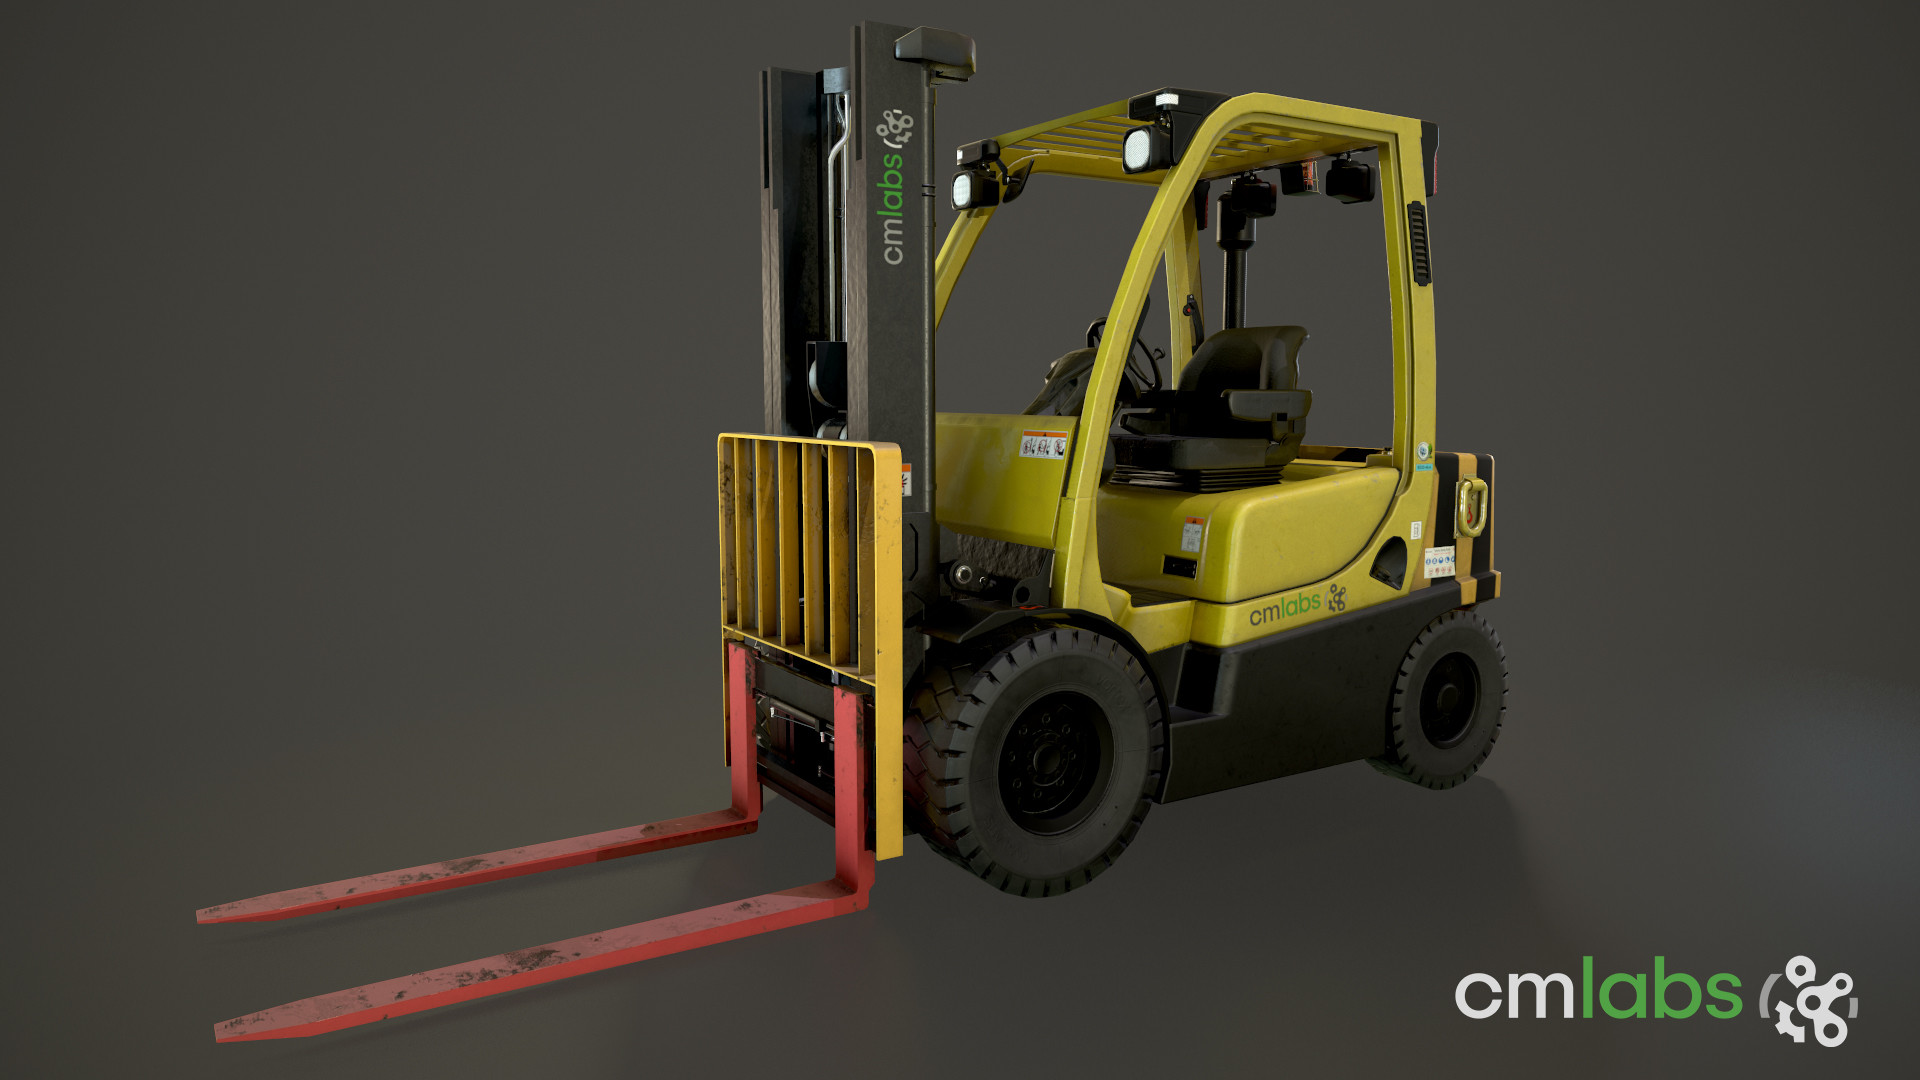 Forklift Training and Certification with CM Labs